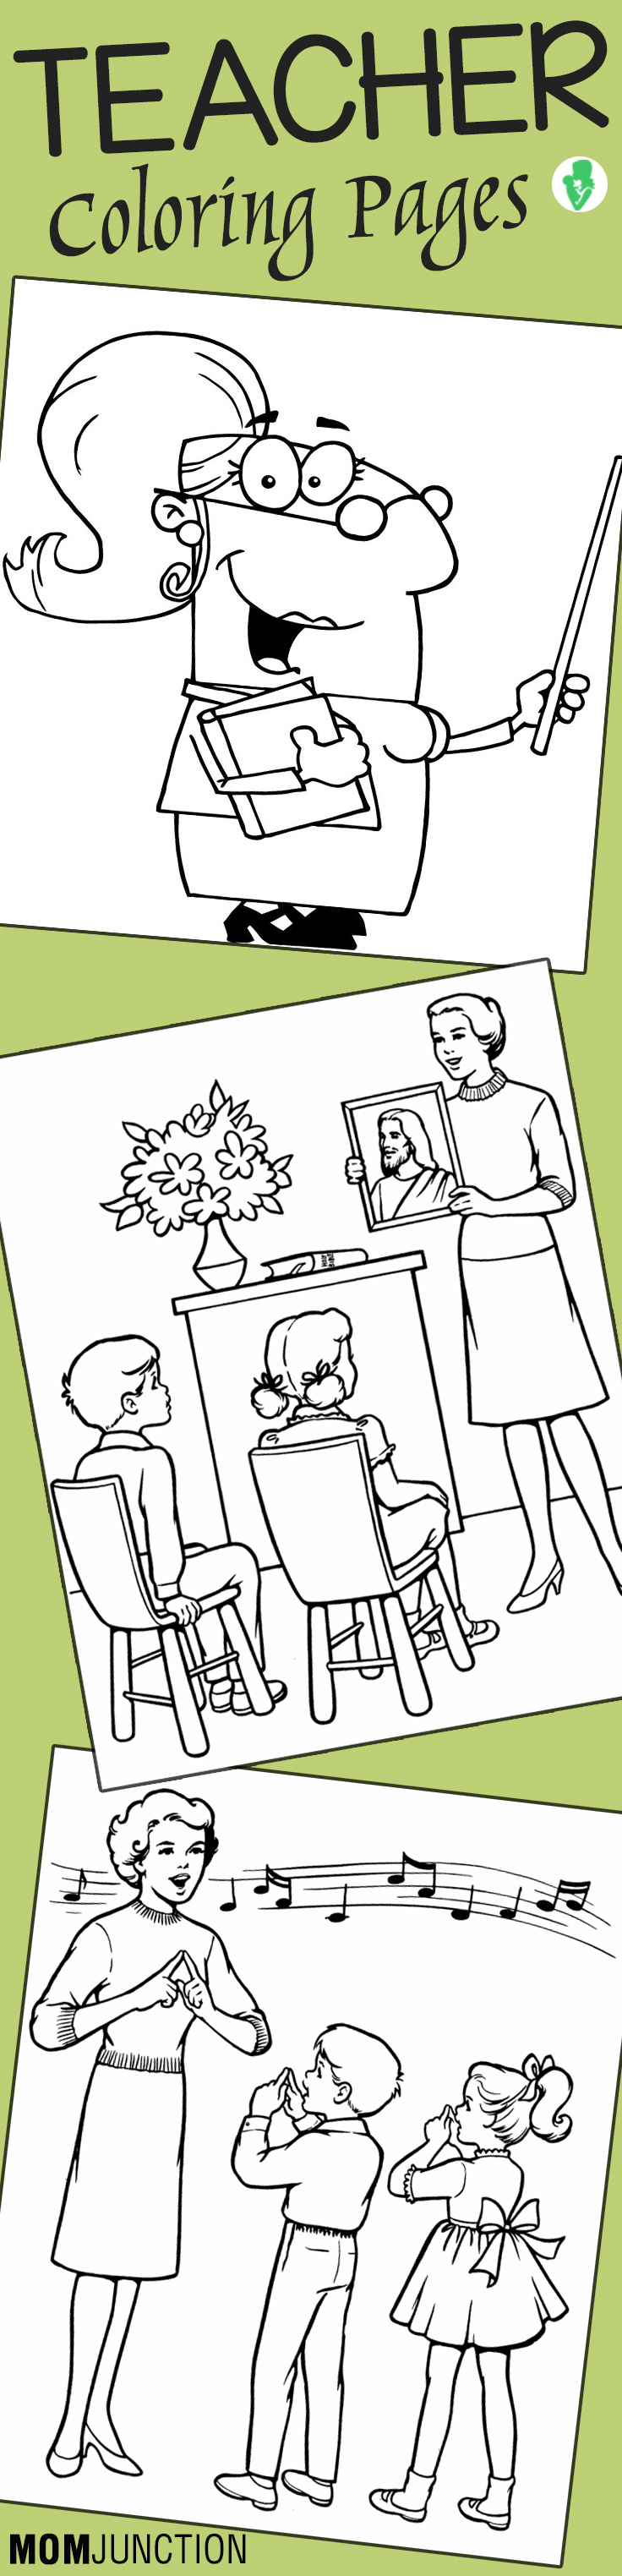 top 10 free printable teacher coloring pages